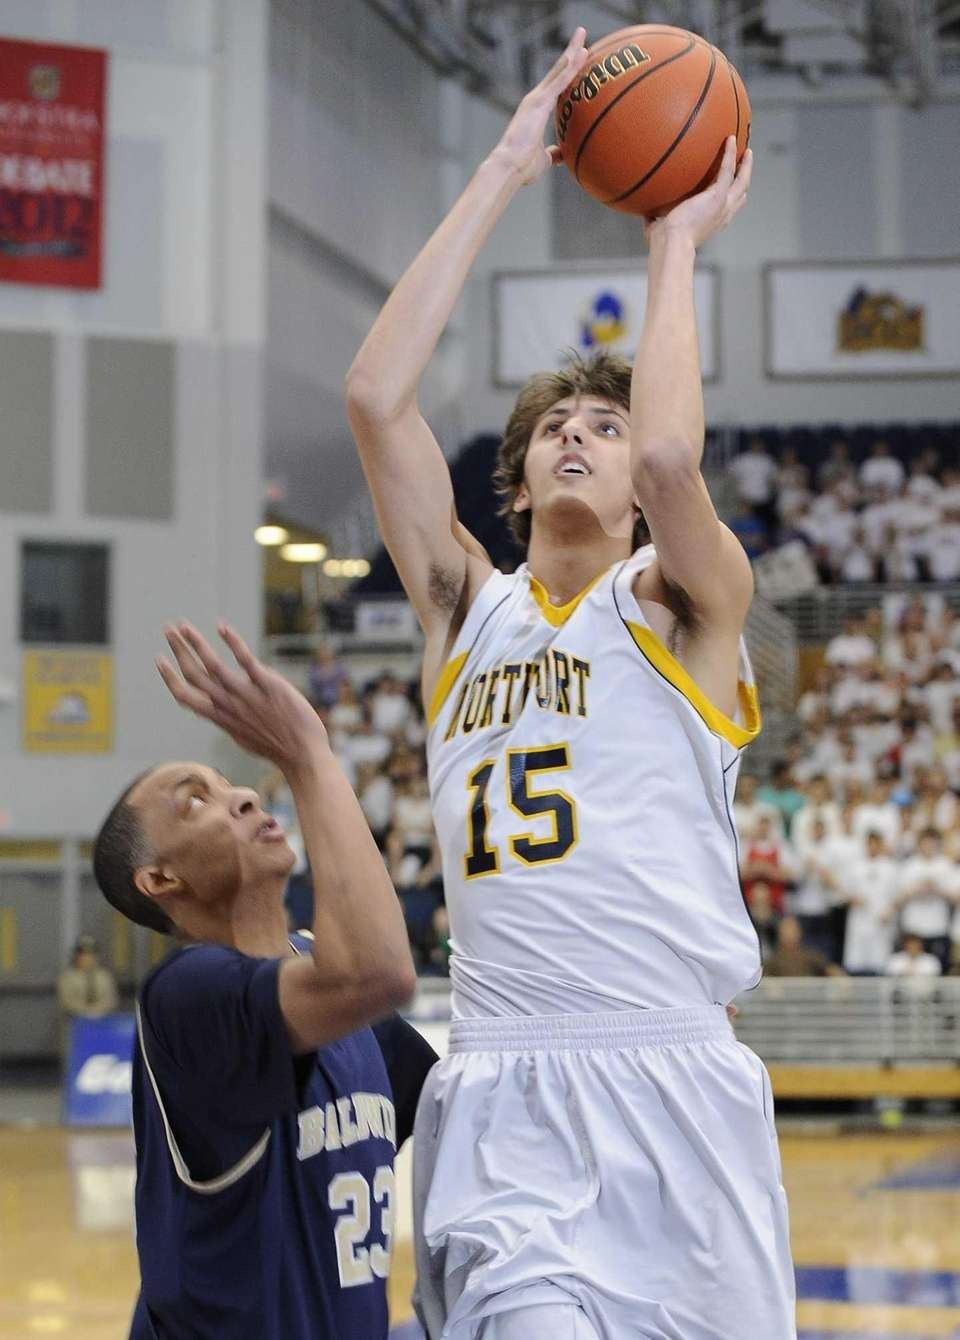 Northport's Luke Petrasek shoots the ball against Baldwin's